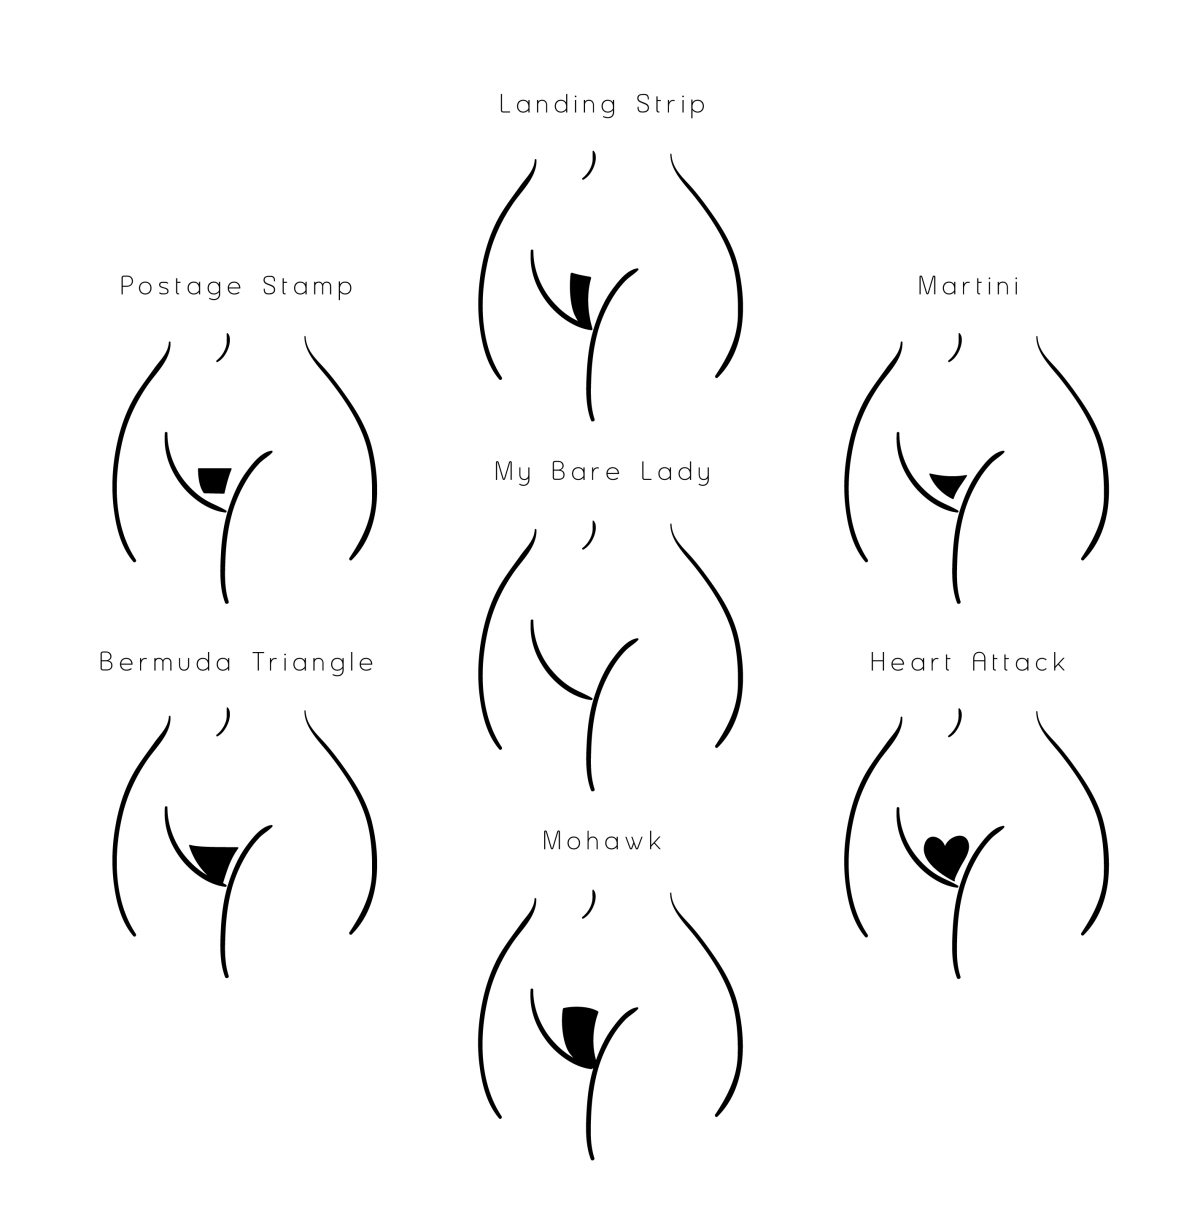 Bare Pussey http://www.therulesrevisited.com/2012/12/what-men-think-about-your-pubic-hair.html